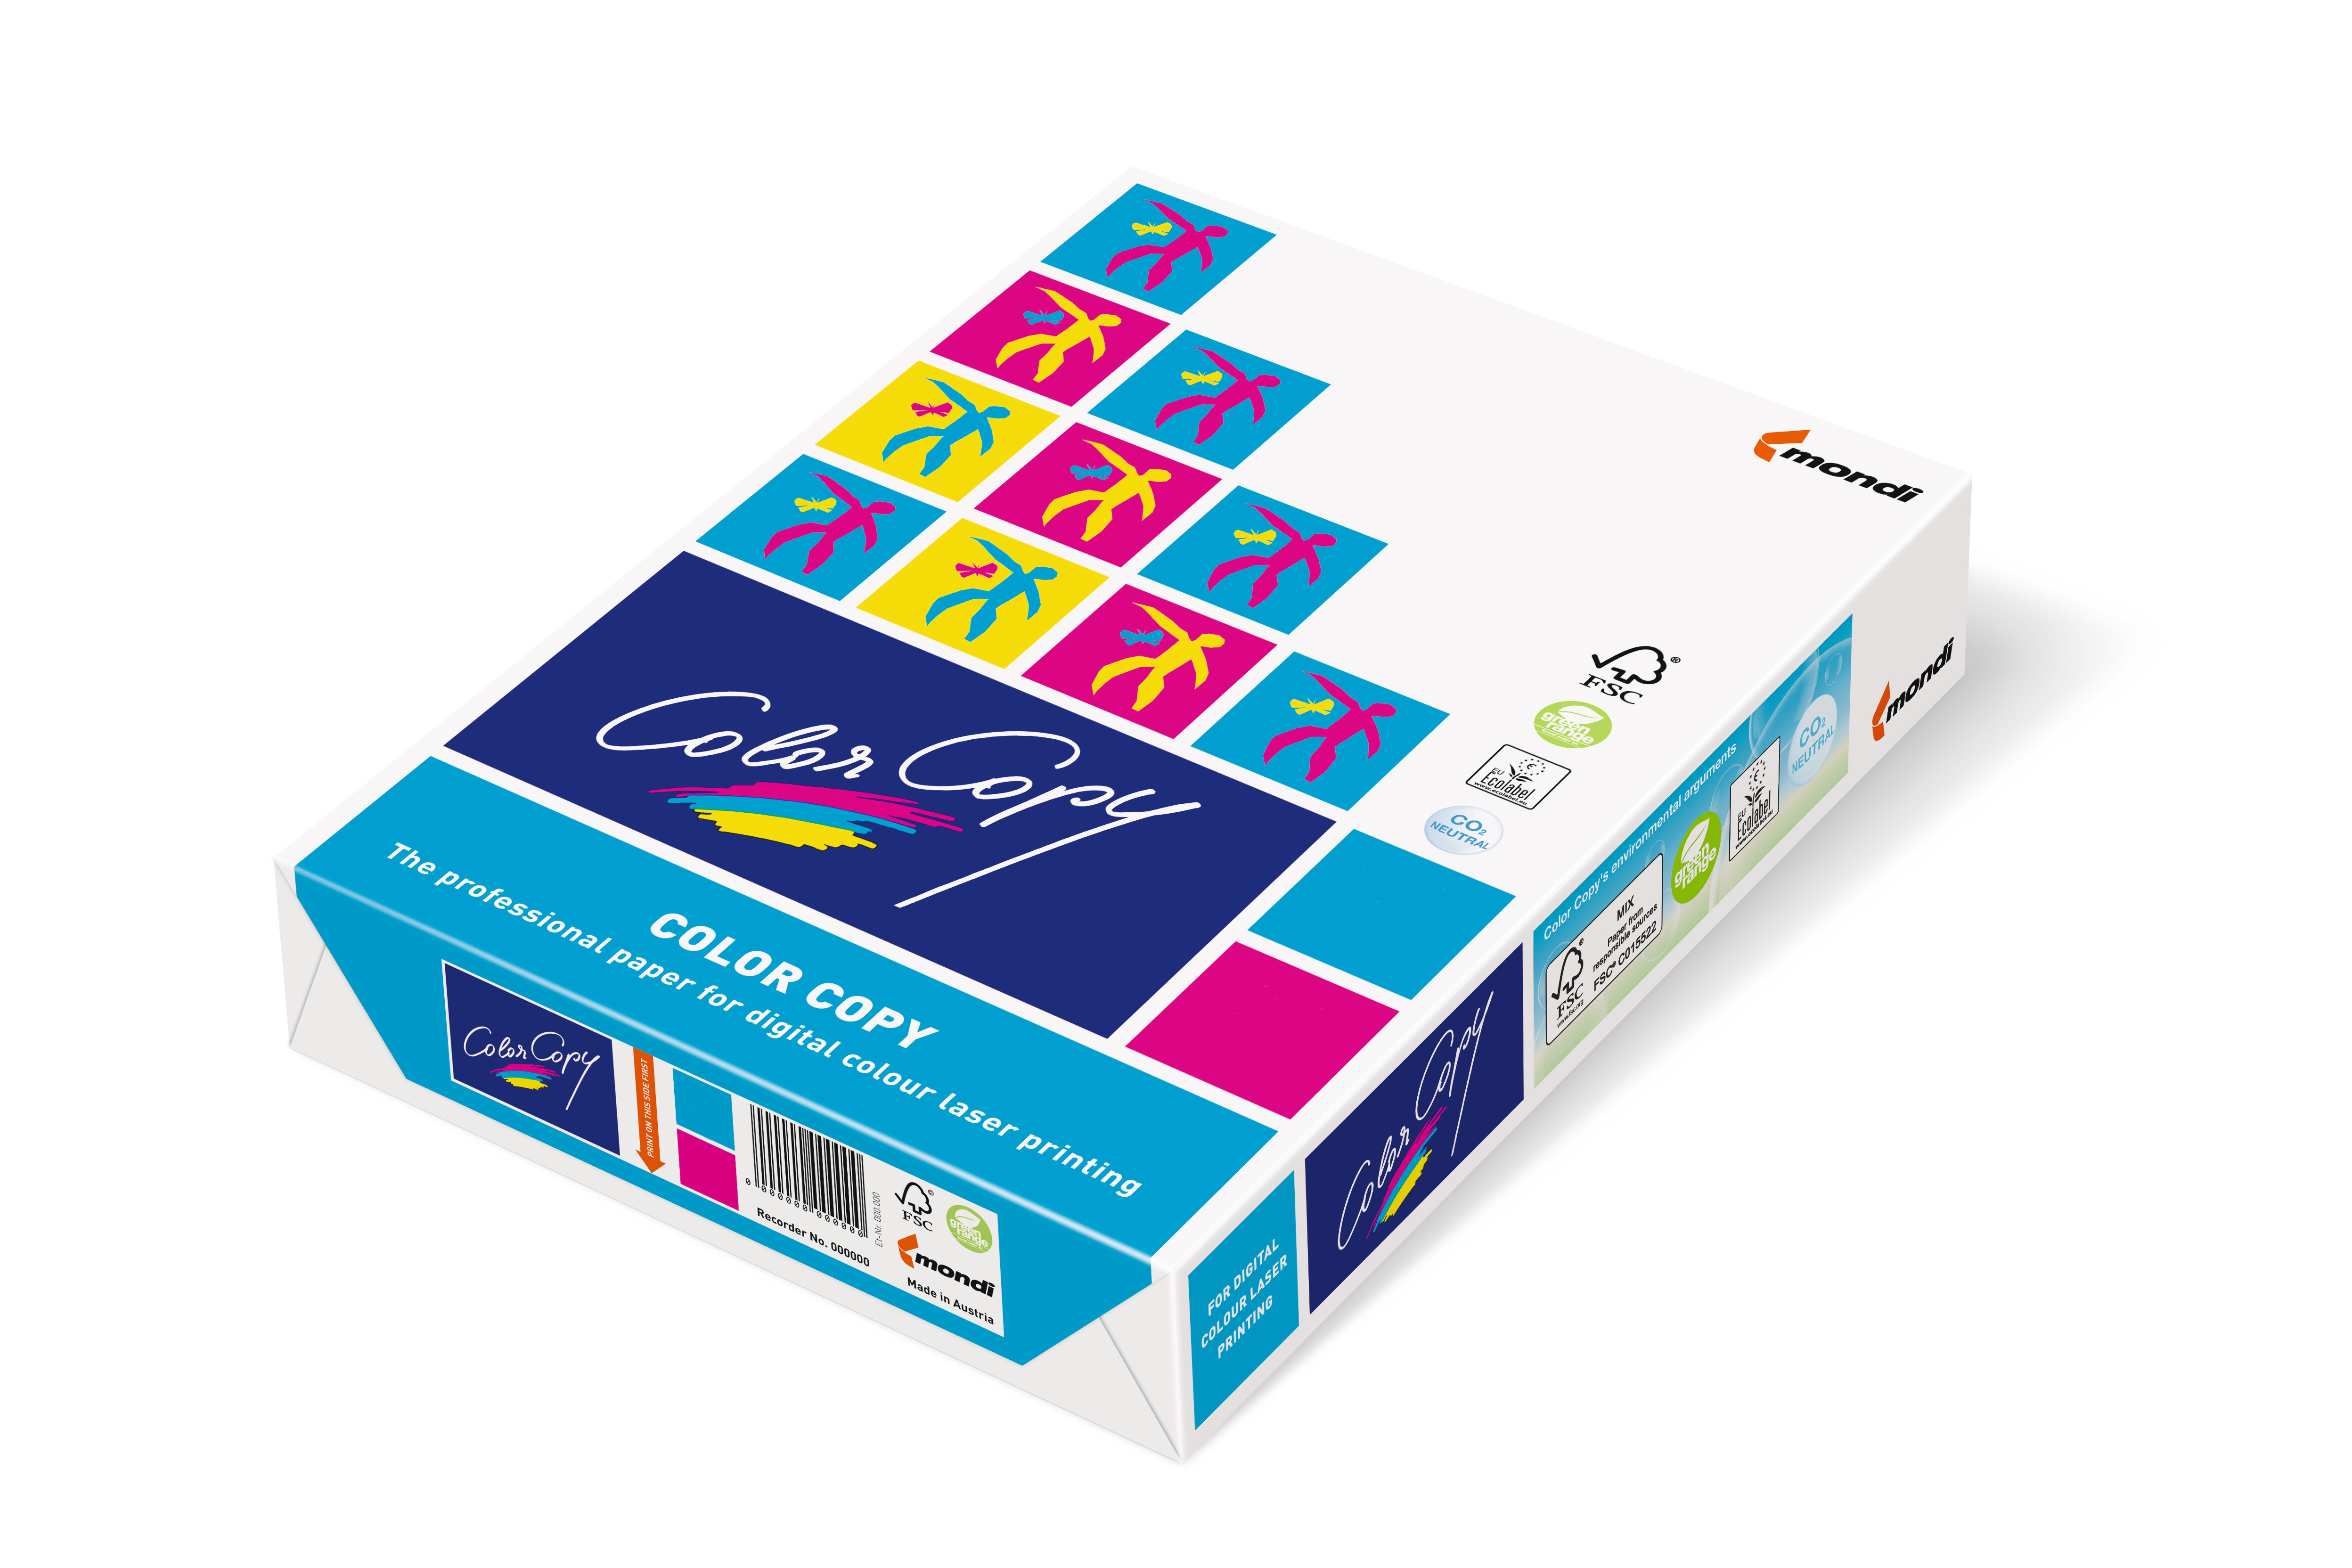 Mondi Color Copy Papier 160g/m² DIN-A5 500 Blatt